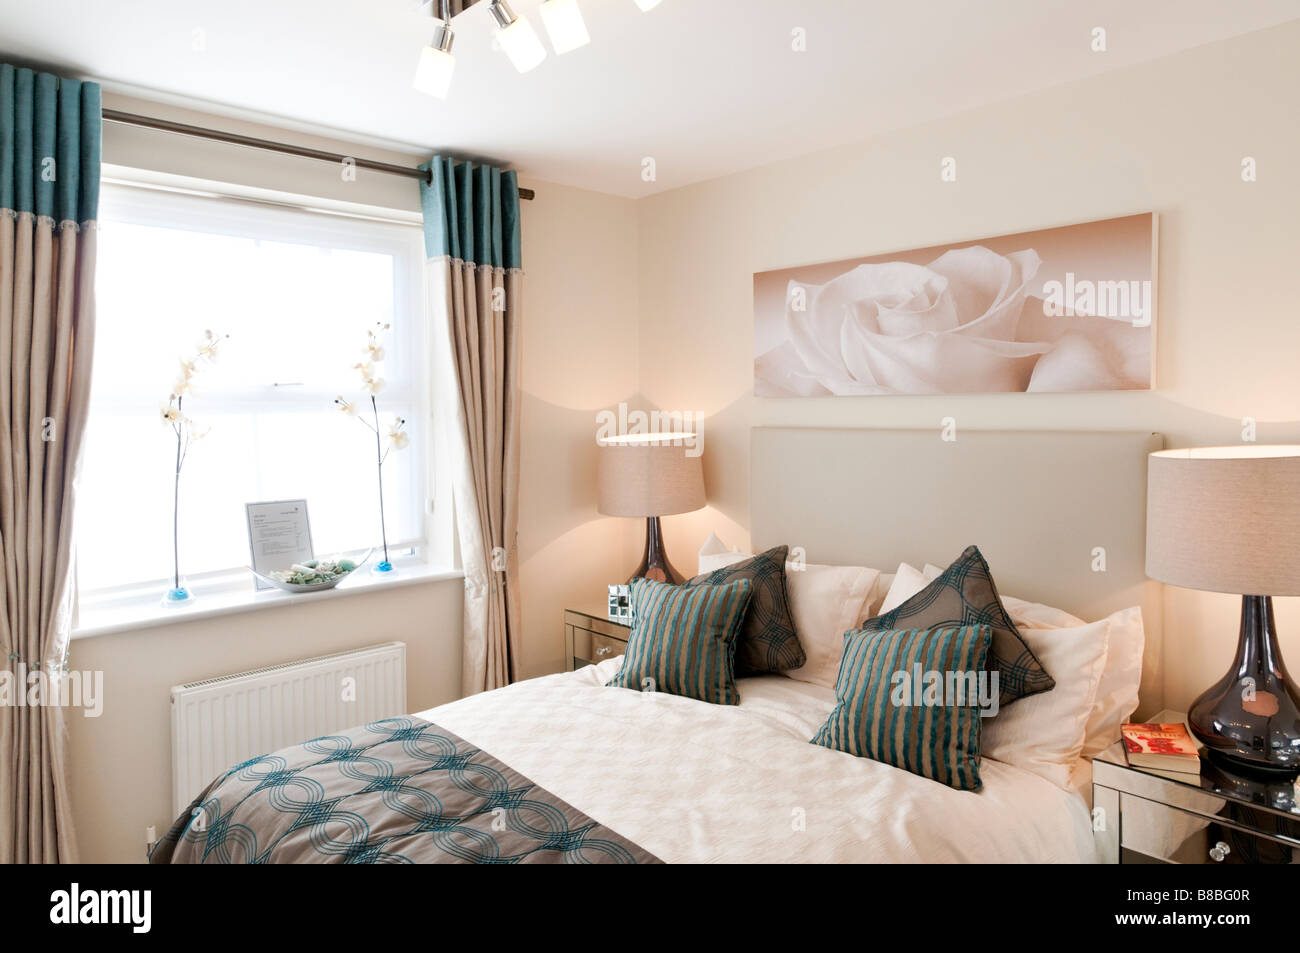 Schlafzimmer in einem George Wimpey neue Build Apartment London England UK anzeigen Stockbild